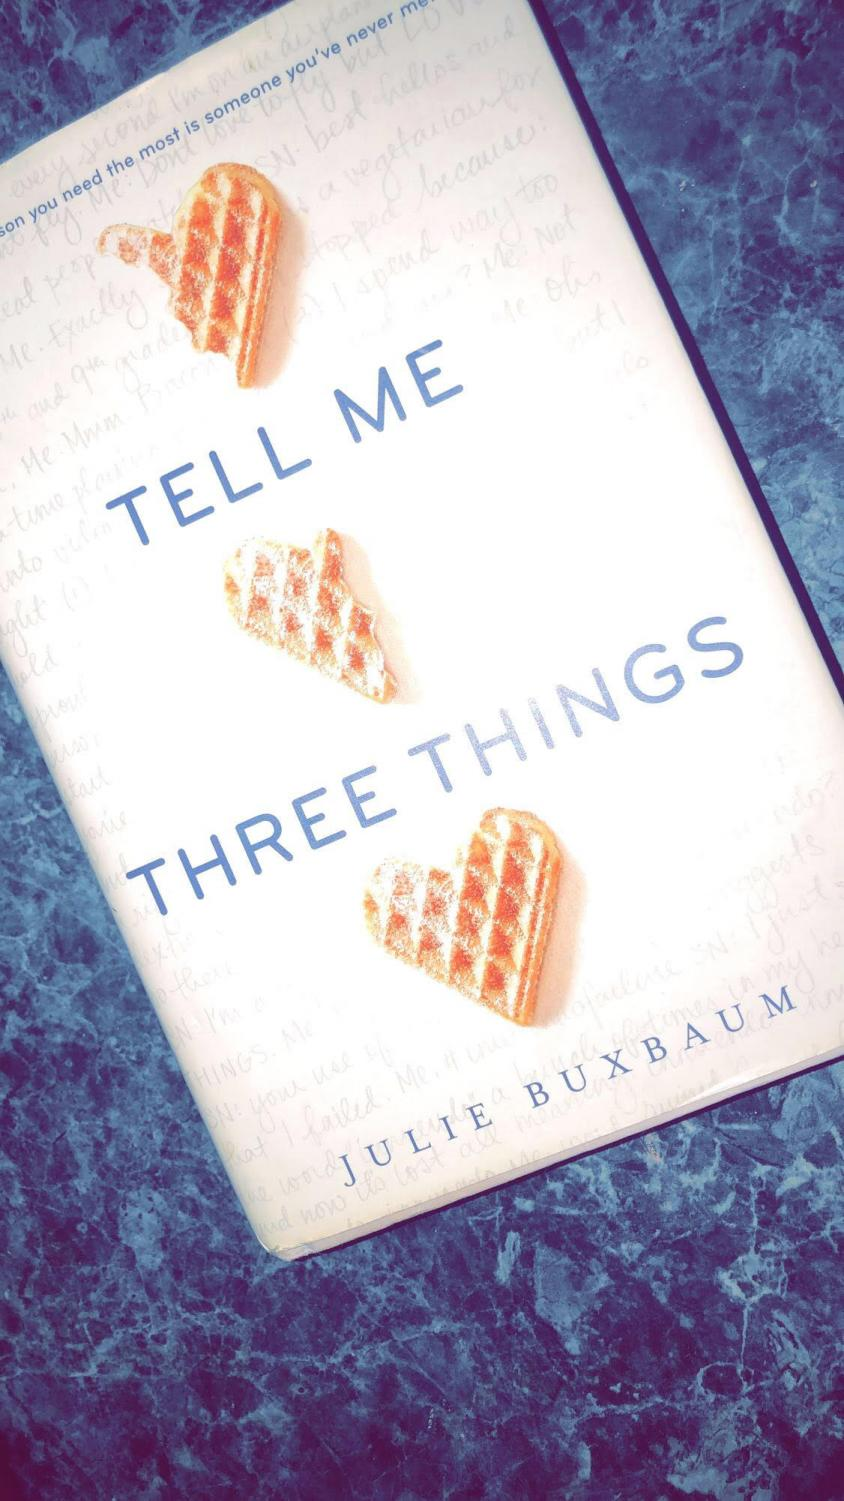 Are you a somebody or a nobody? Maybe you're both. in the book Tell Me Three Things you learn the story of  two people who were nobodies until they find each other. They fall in love and became somebodies to each other.